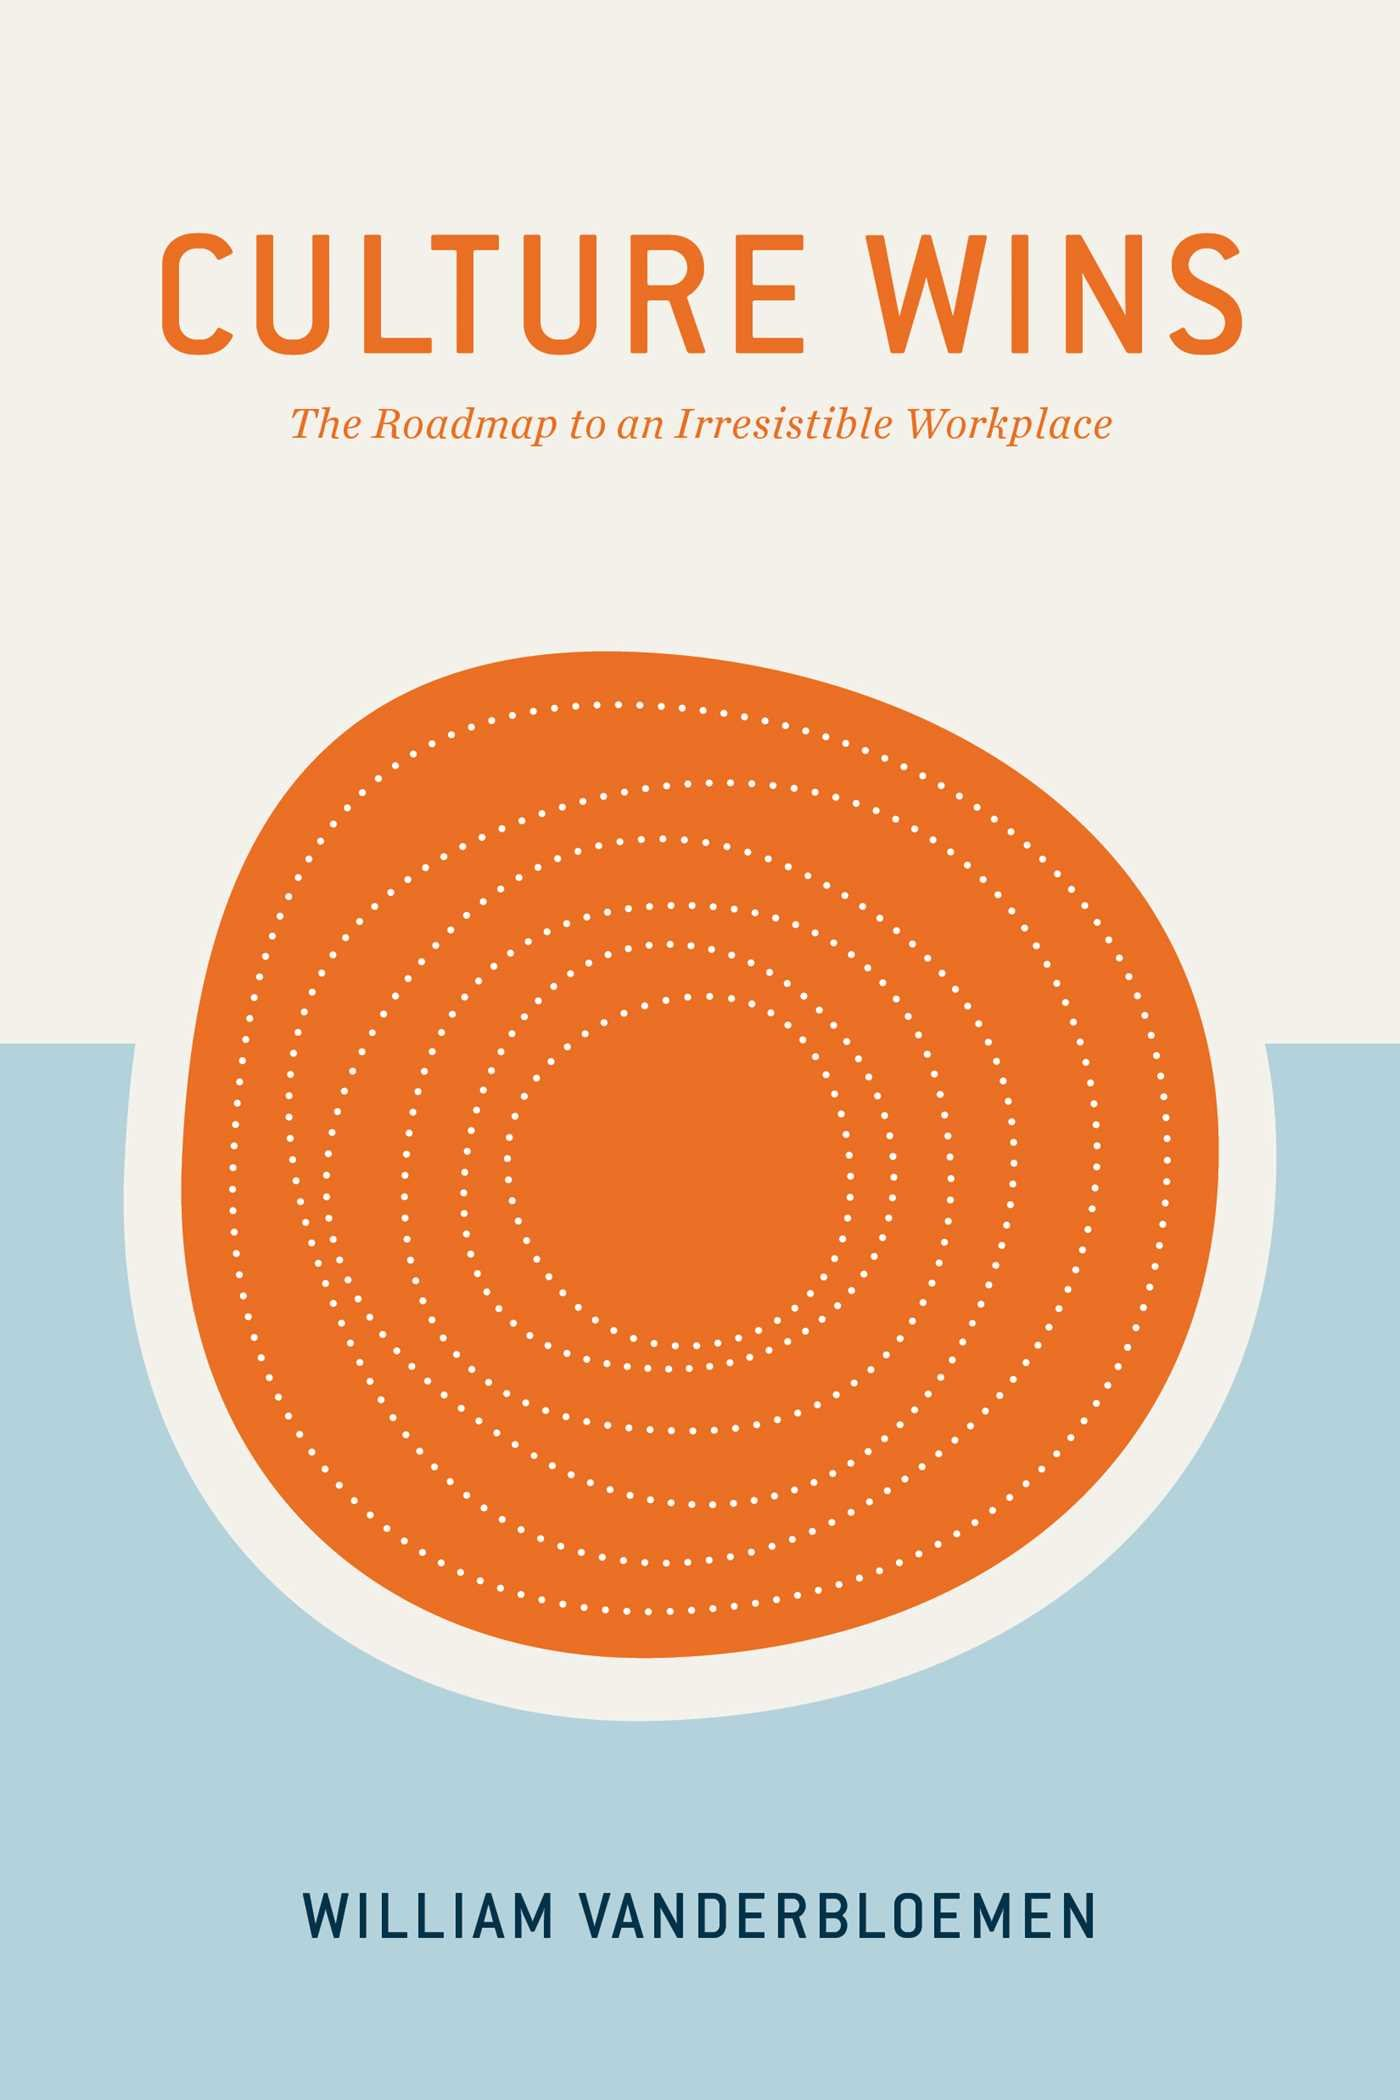 Culture Wins: The Roadmap to an Irresistible Workplace